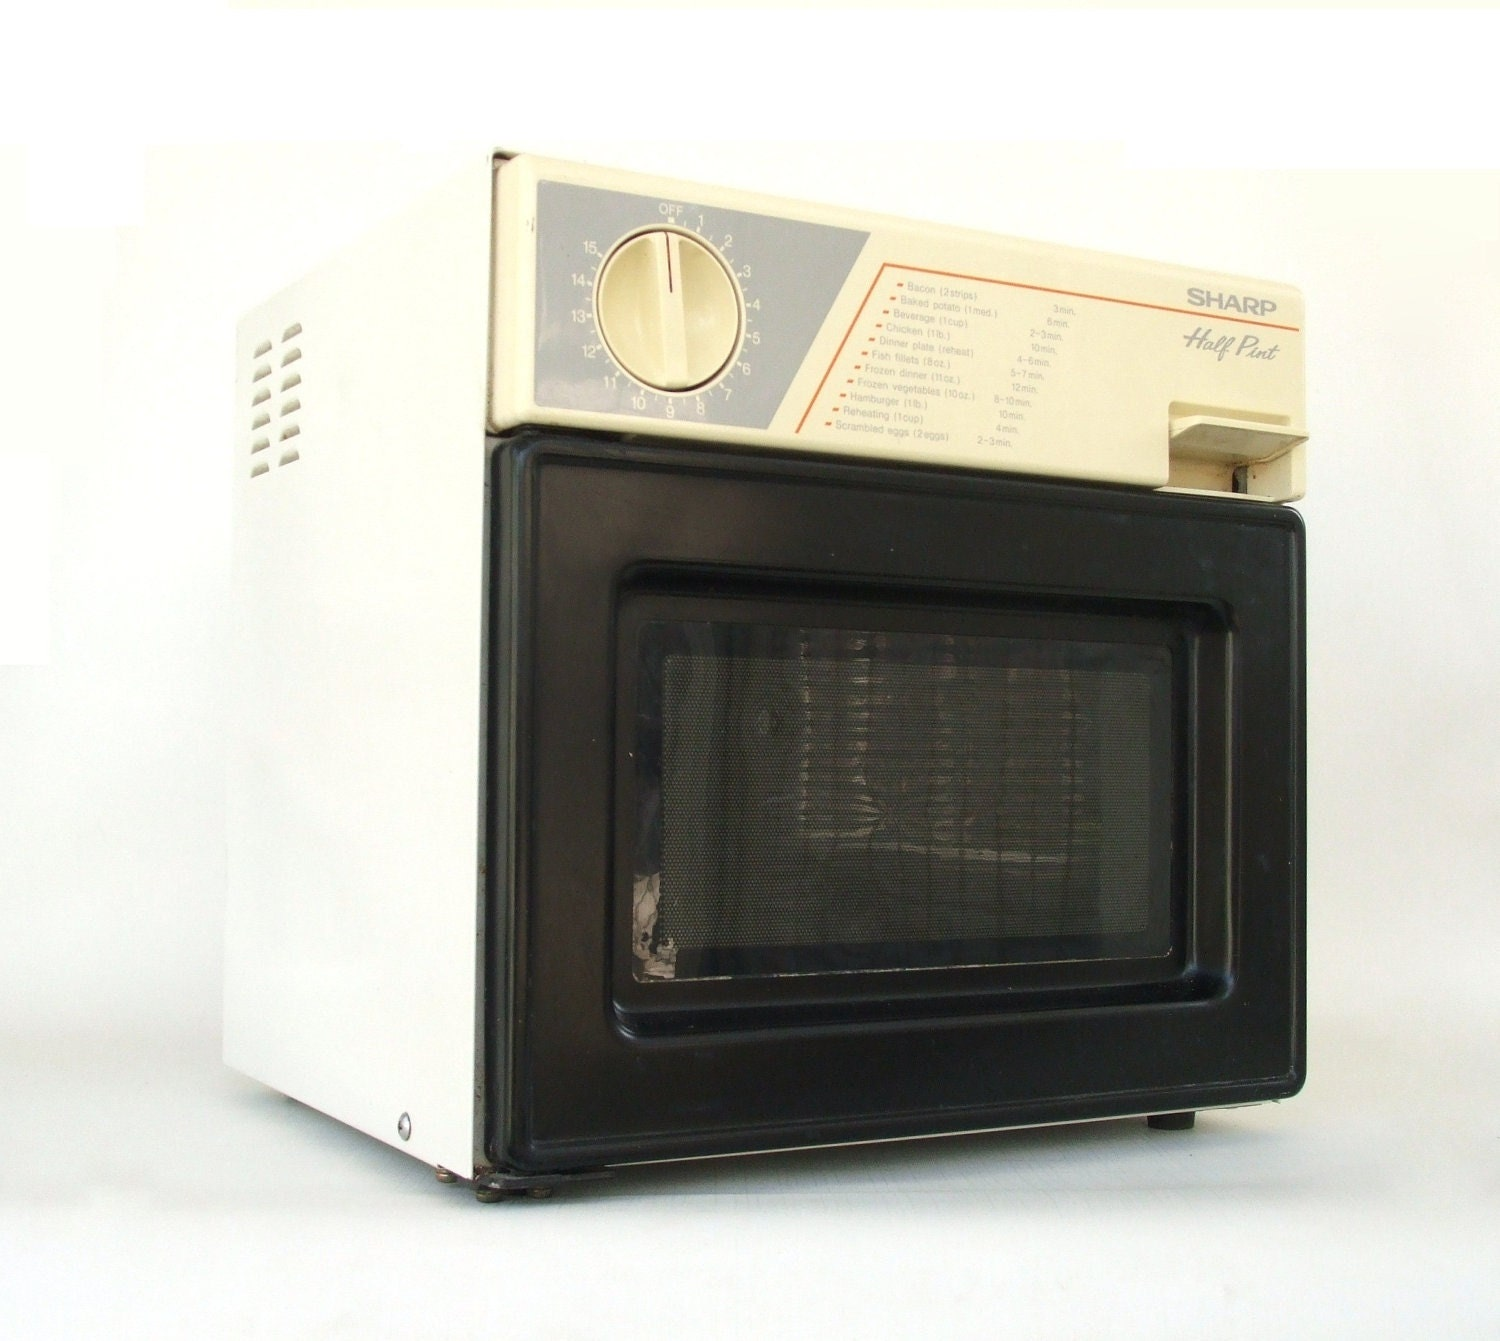 Sharp Half Pint Microwave Oven Kitchen By Lauraslastditch